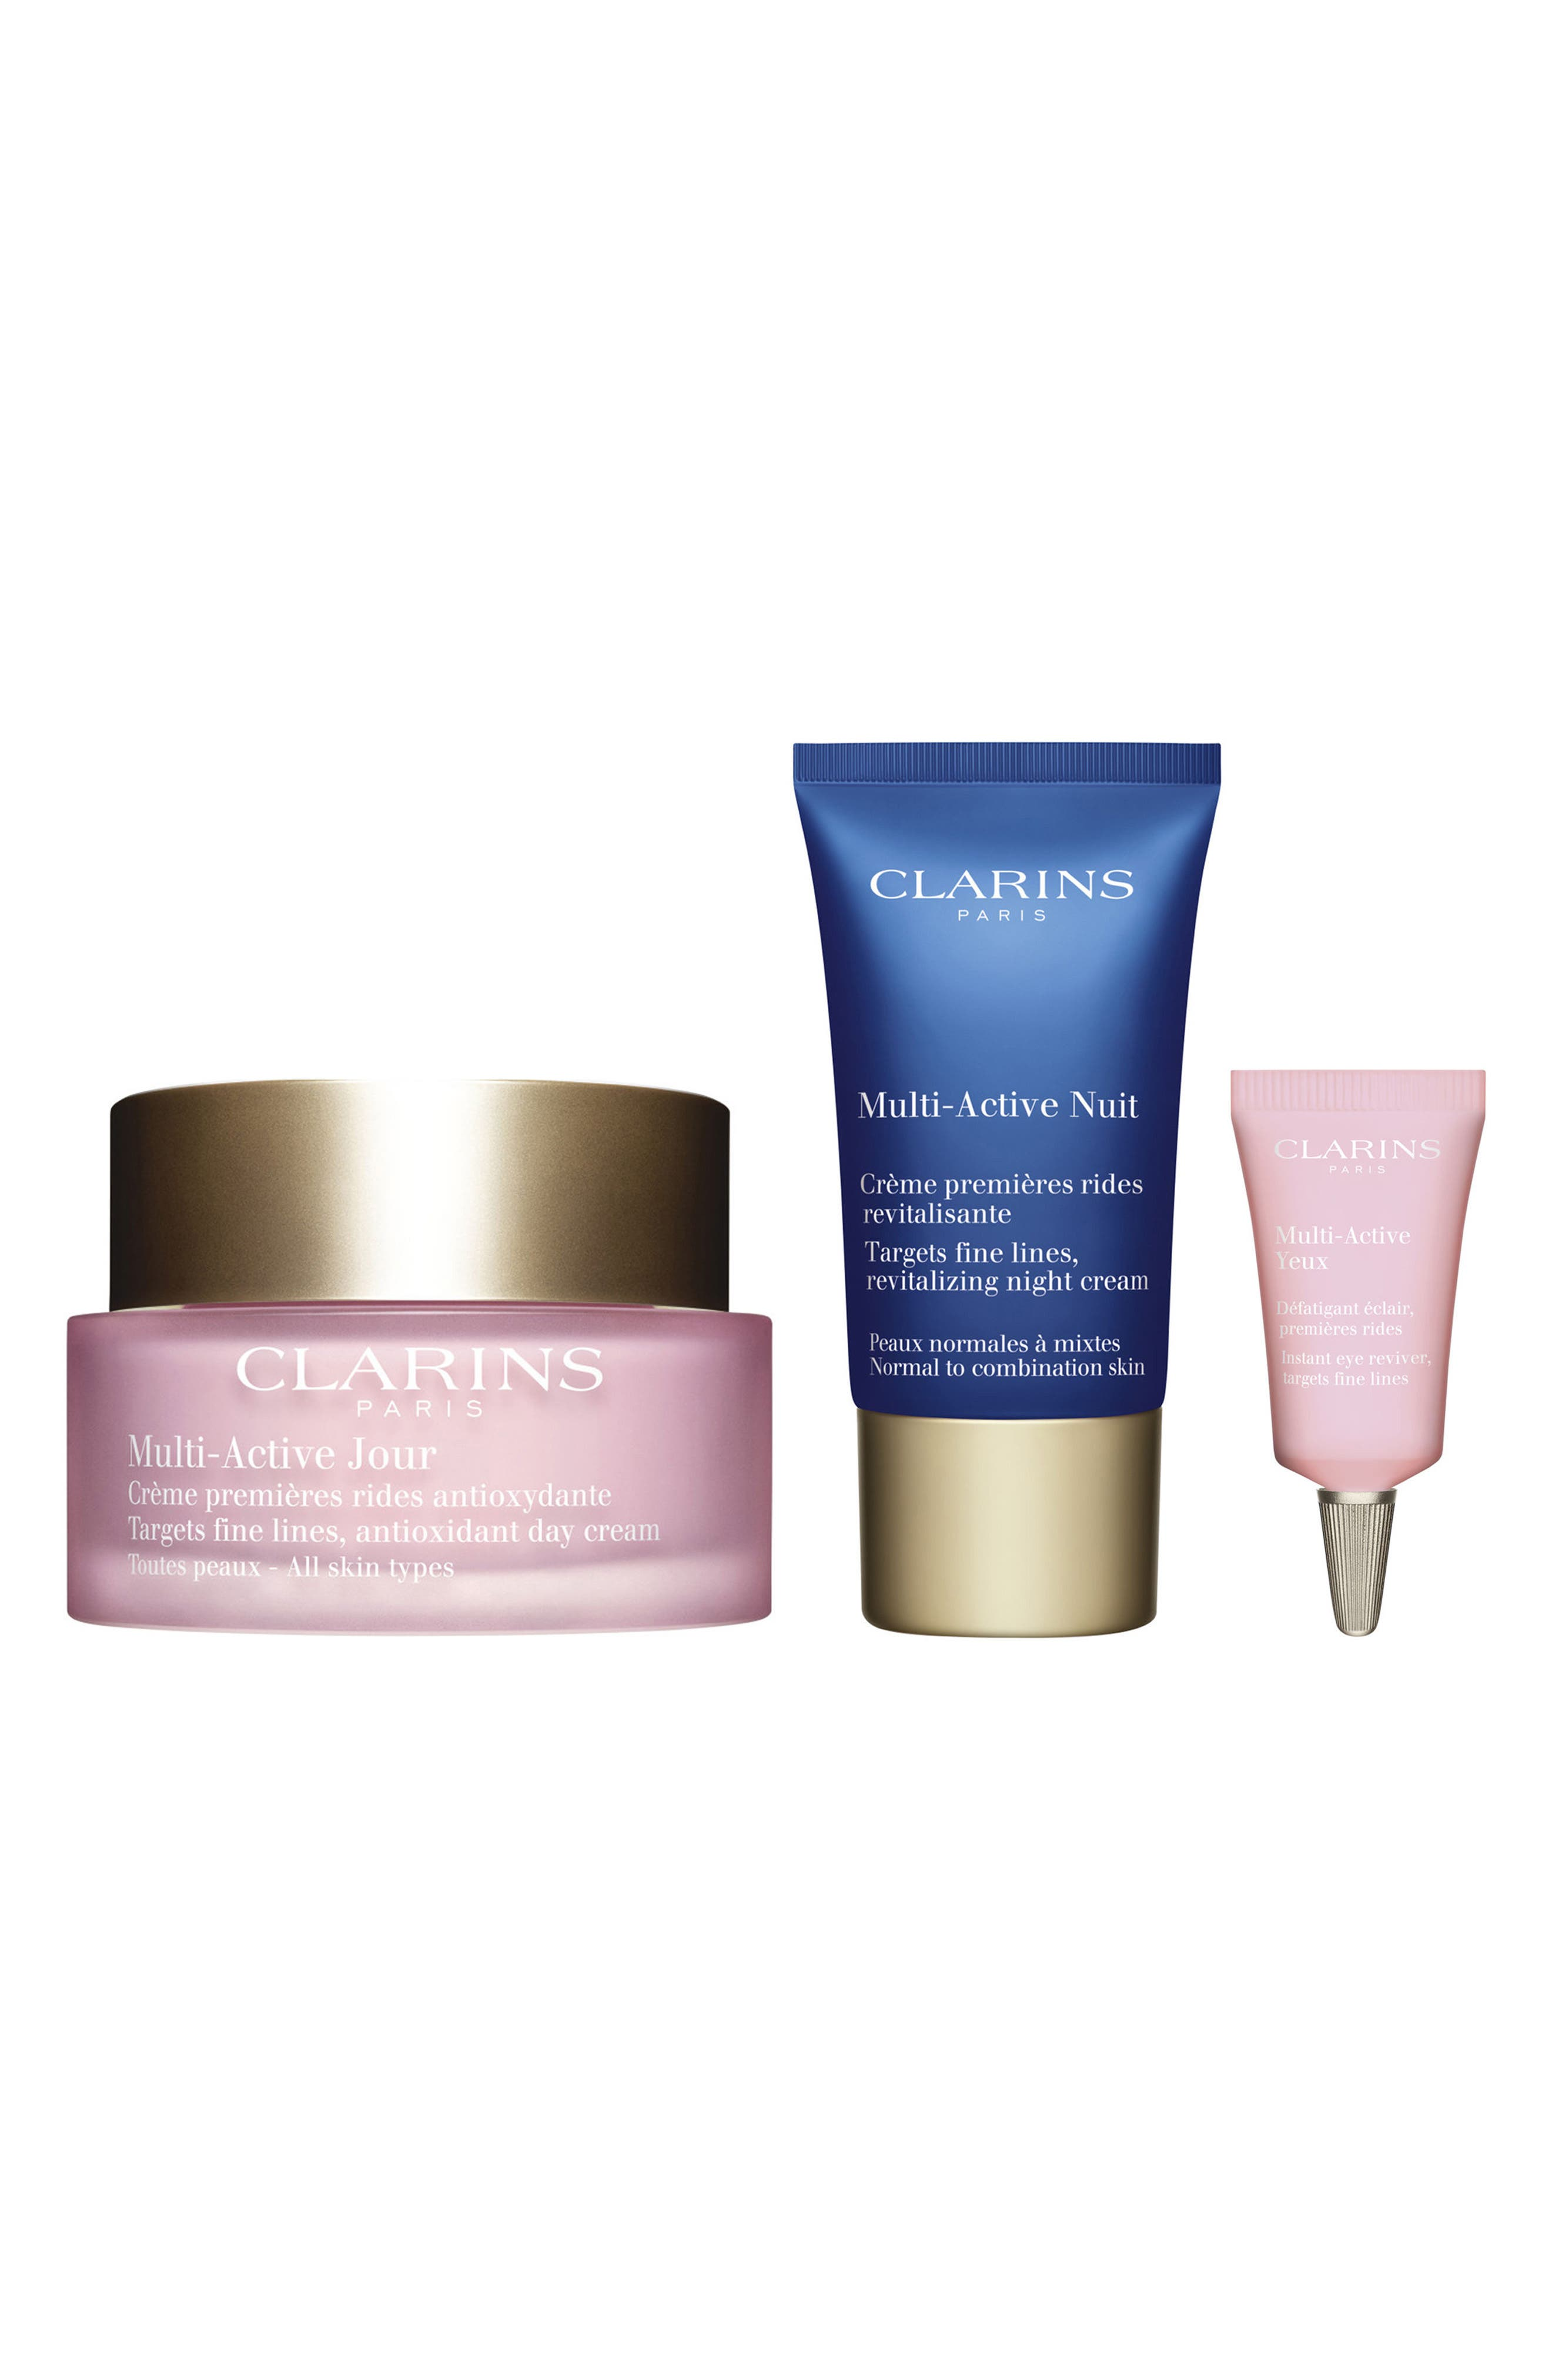 Clarins Multi-Active 24/7 Discovery Kit (Limited Edition)